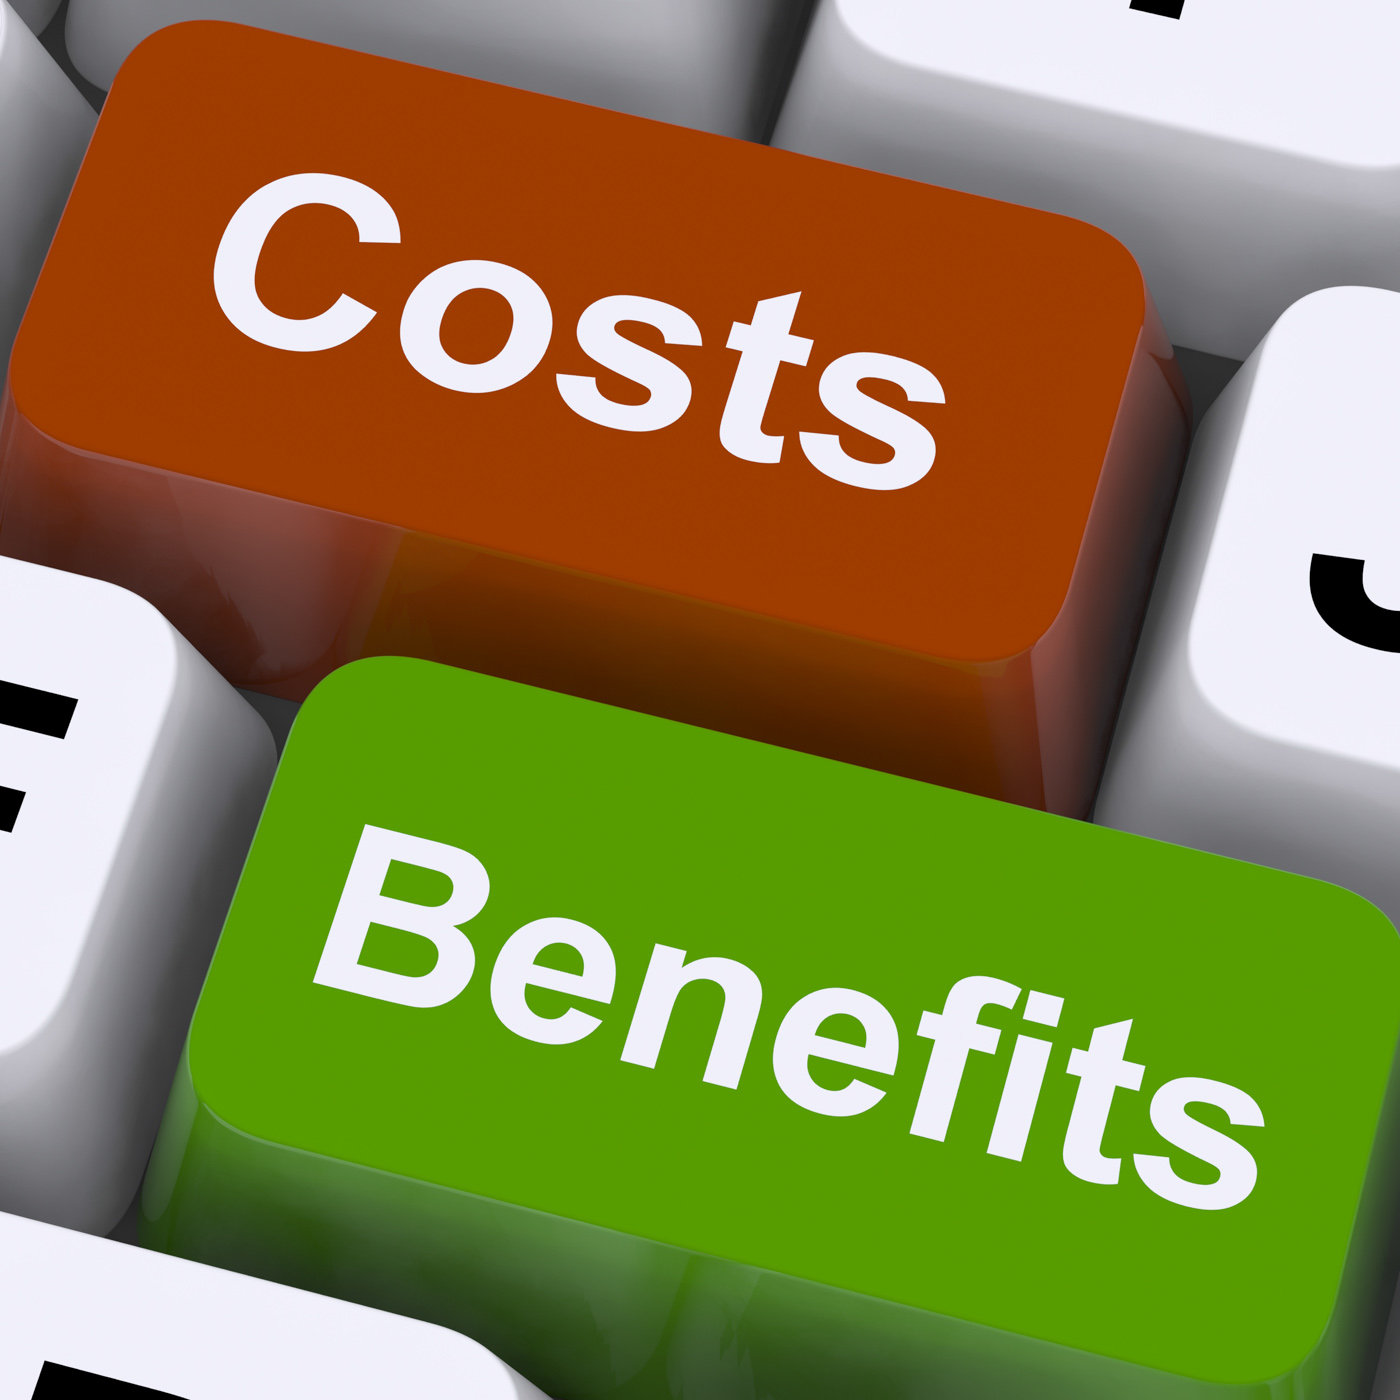 Costs benefits keys showing analysis and value of an investment photo